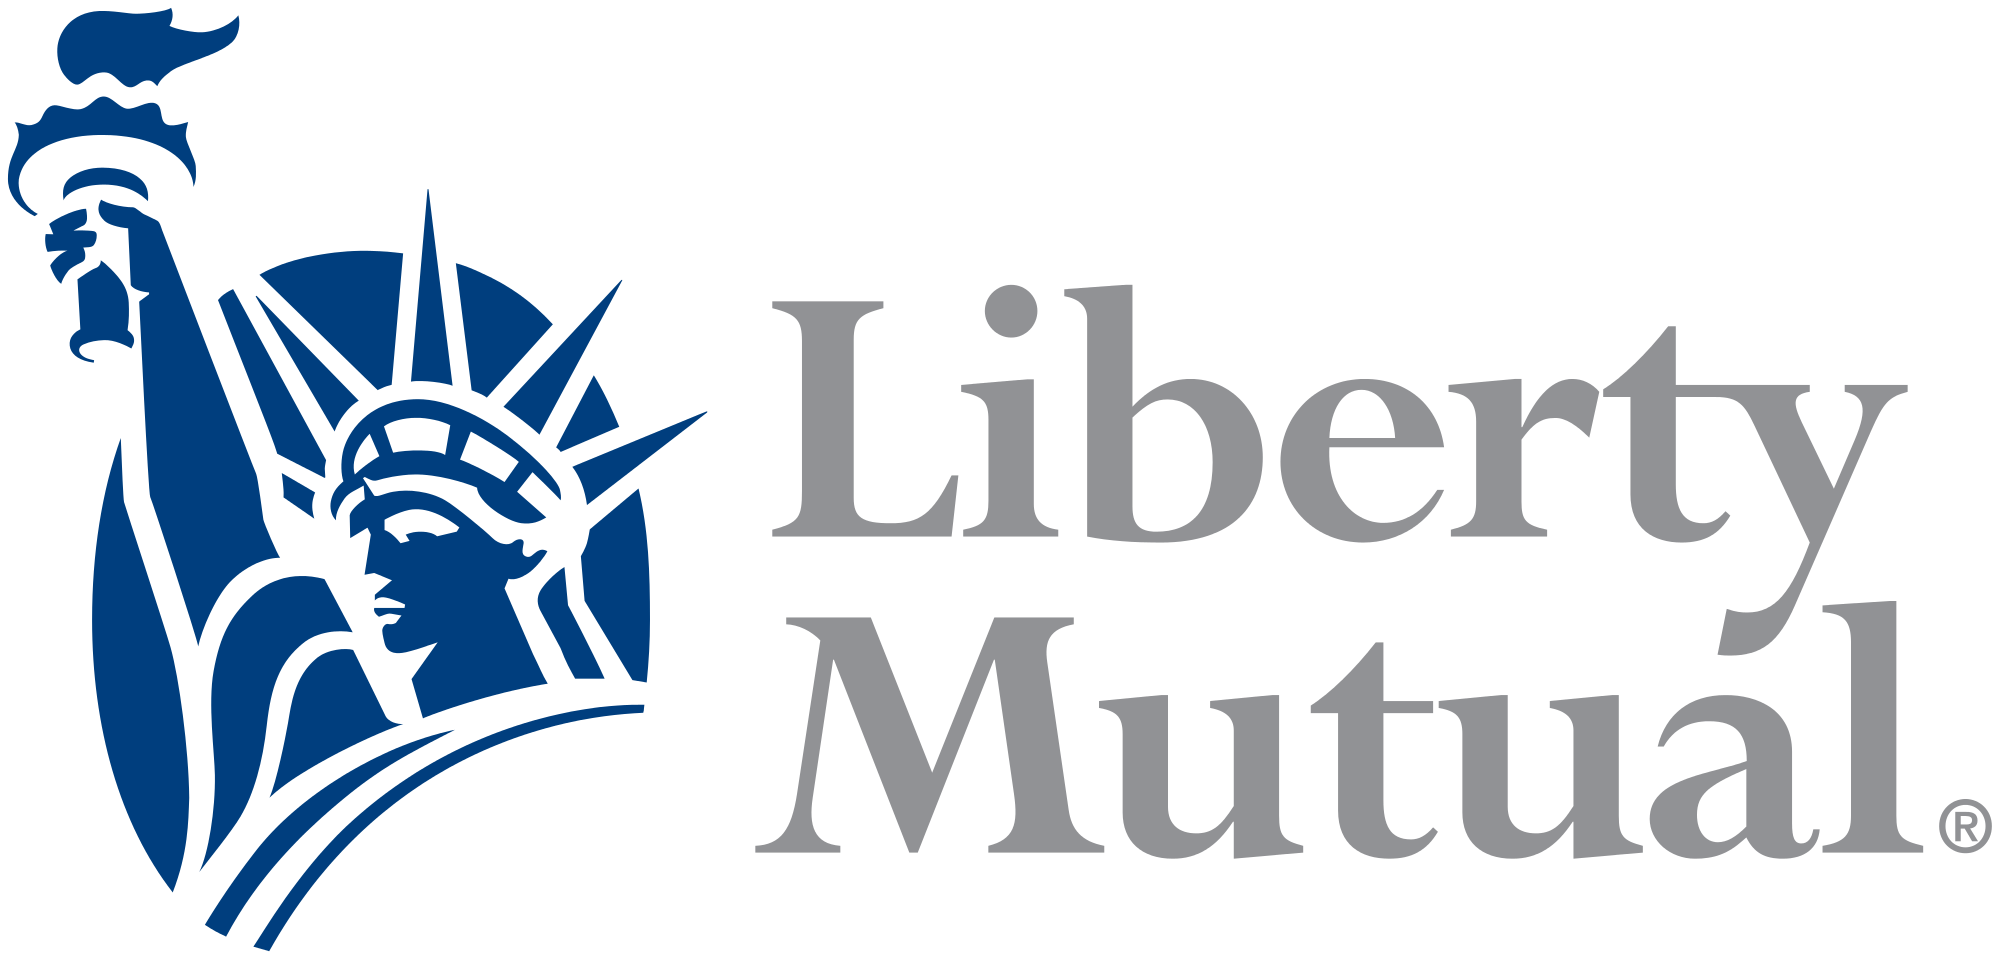 Liberty Mutual Insurance Quote Liberty Mutual Insurance Logos  Google Search  Insurance